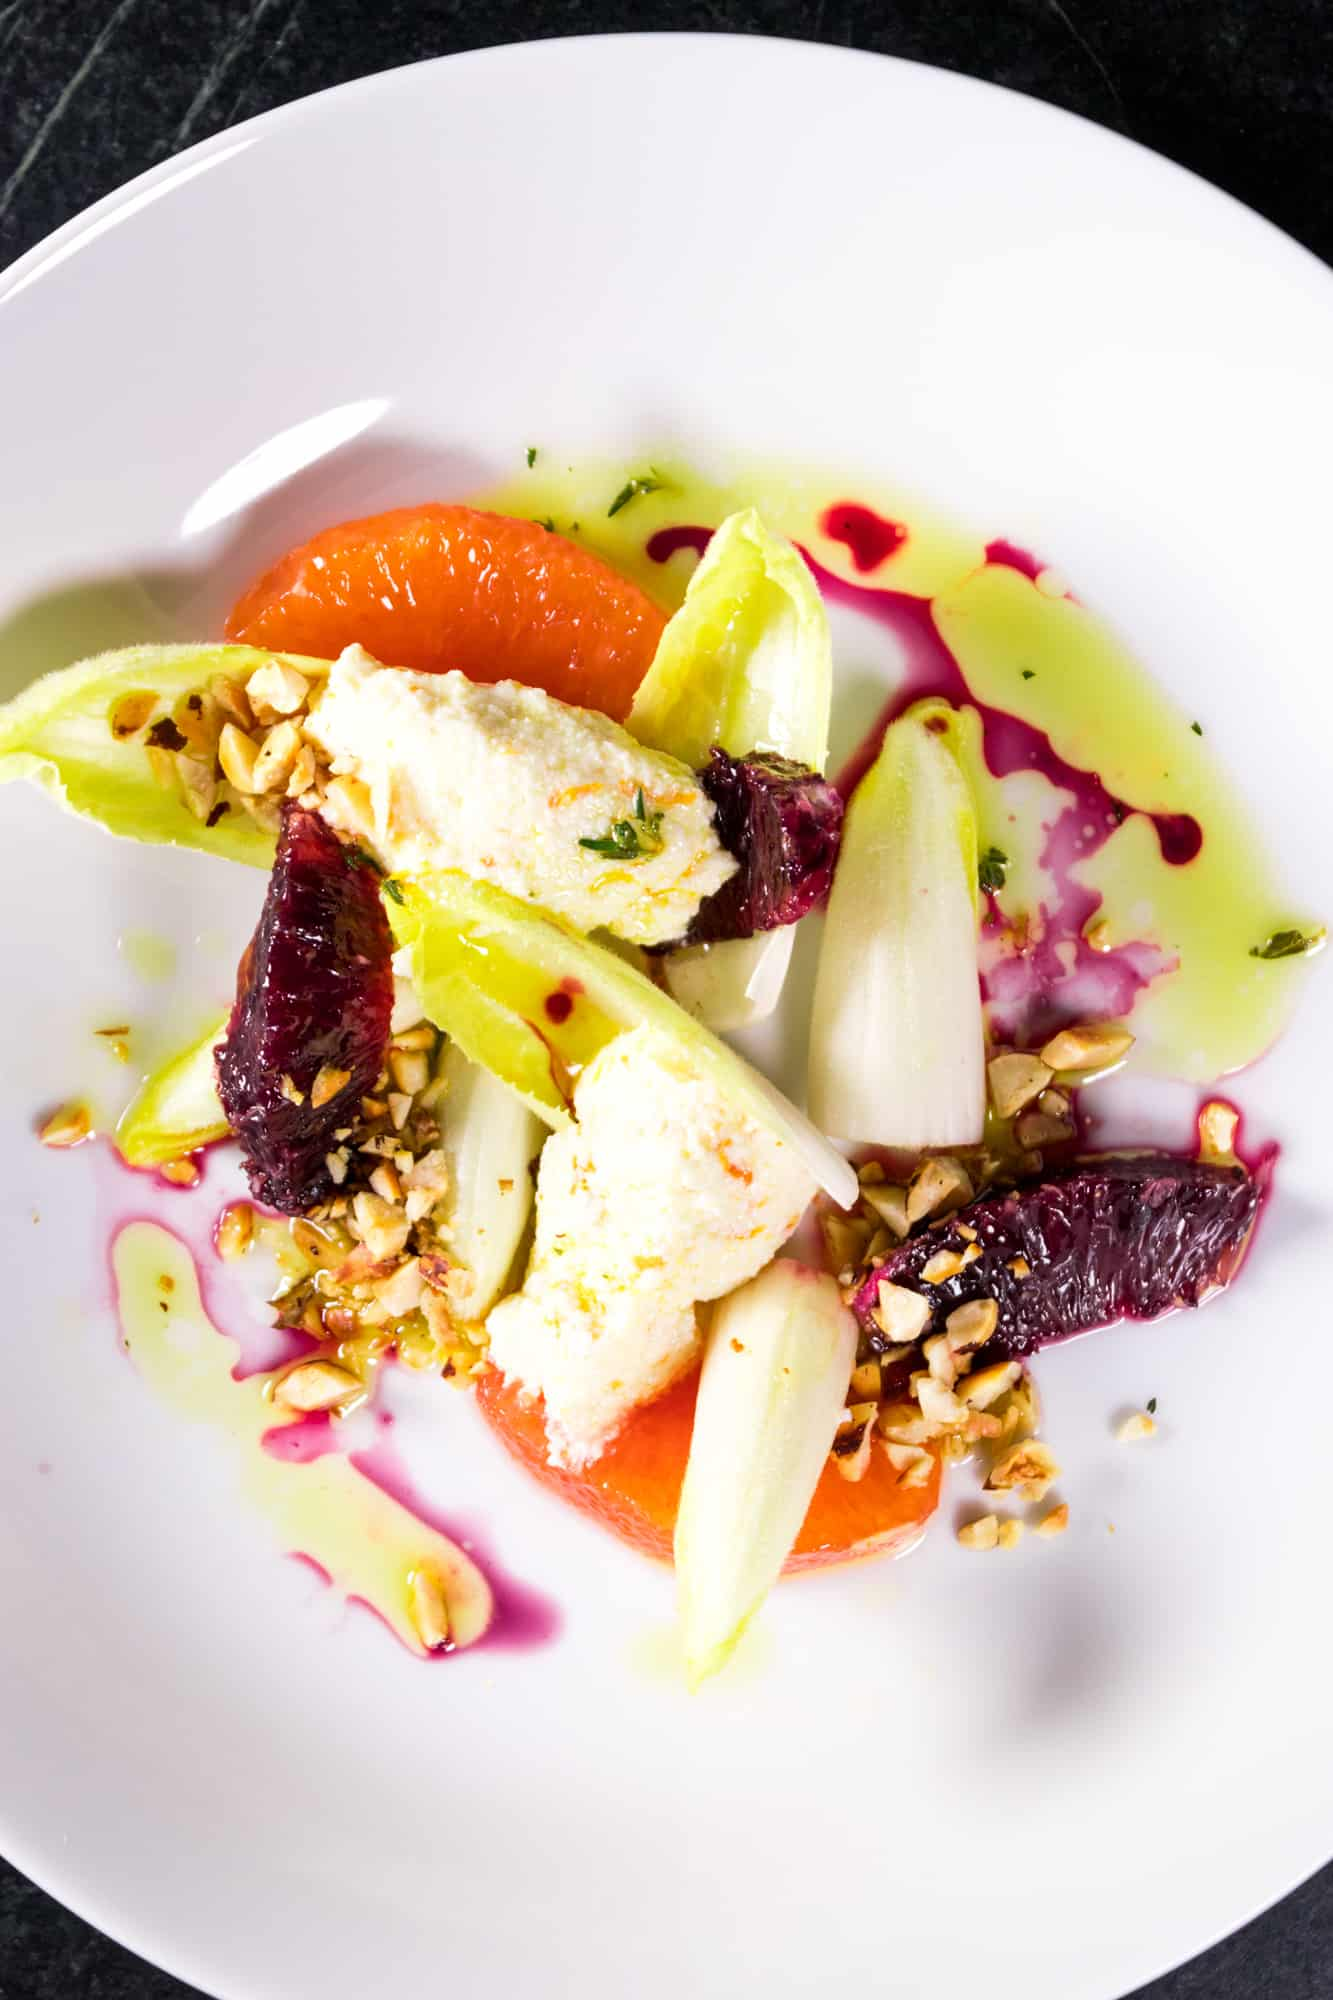 Endive & Blood Orange Salad